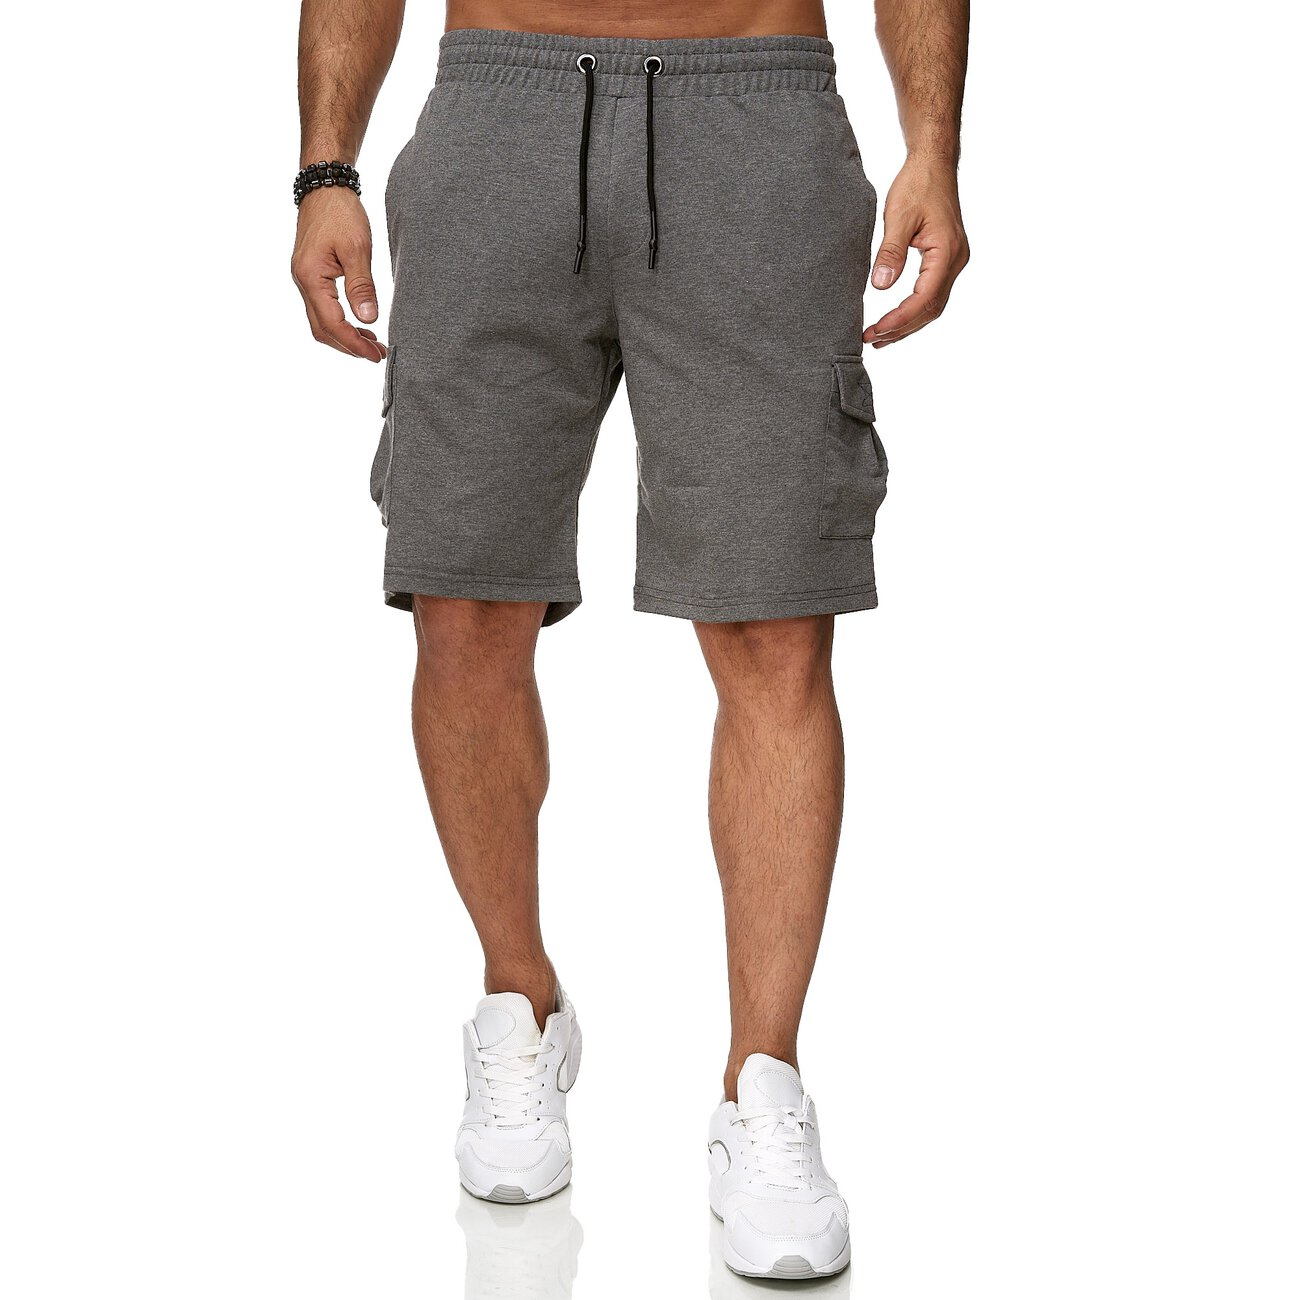 reslad kurze hose herren cargo bermuda shorts jogginghose sport hose. Black Bedroom Furniture Sets. Home Design Ideas